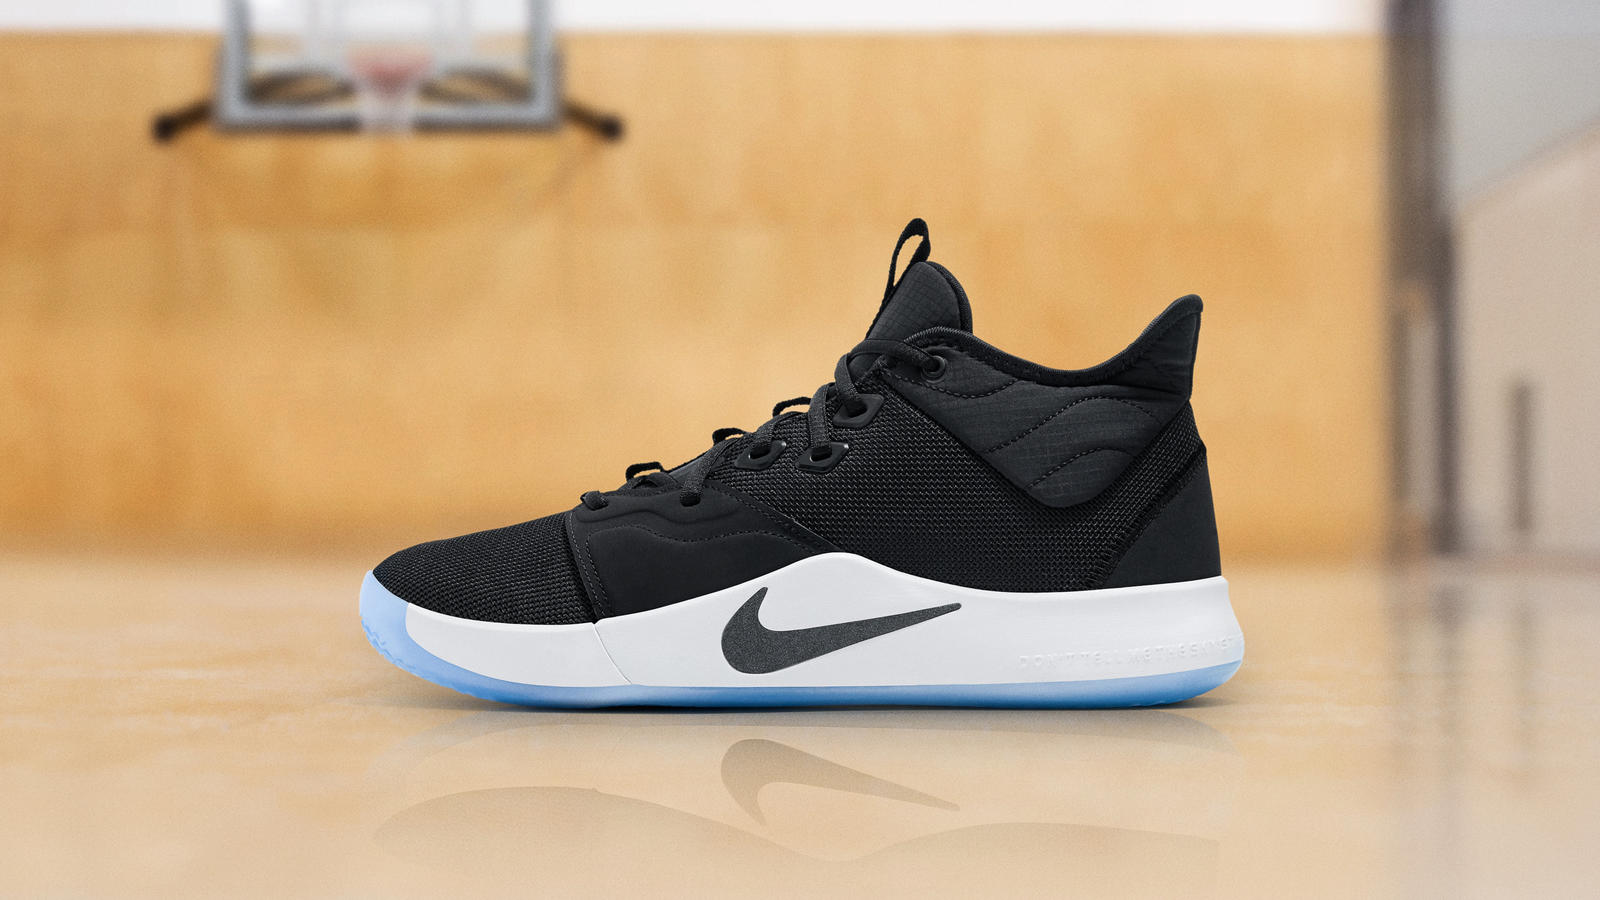 Paul George PG3 Black and White Nike News